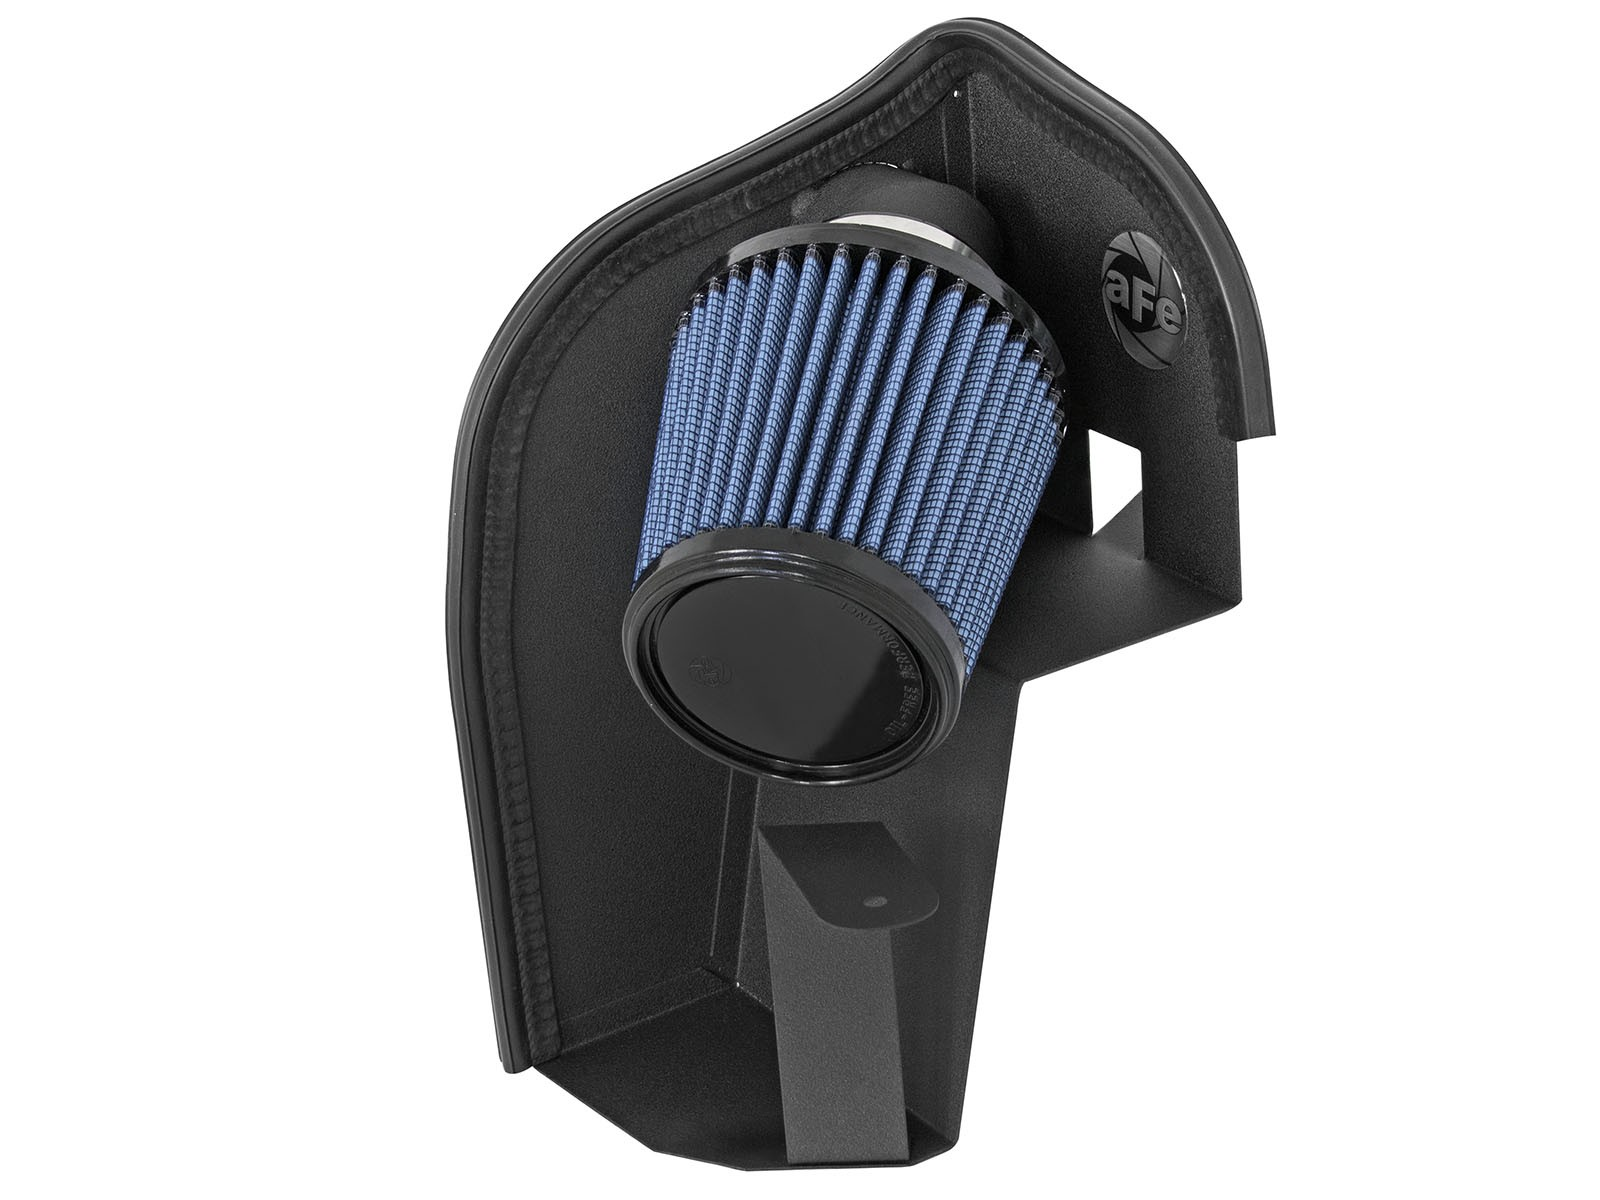 aFe POWER 54-10561 Magnum FORCE Stage-1 Pro 5R Cold Air Intake System